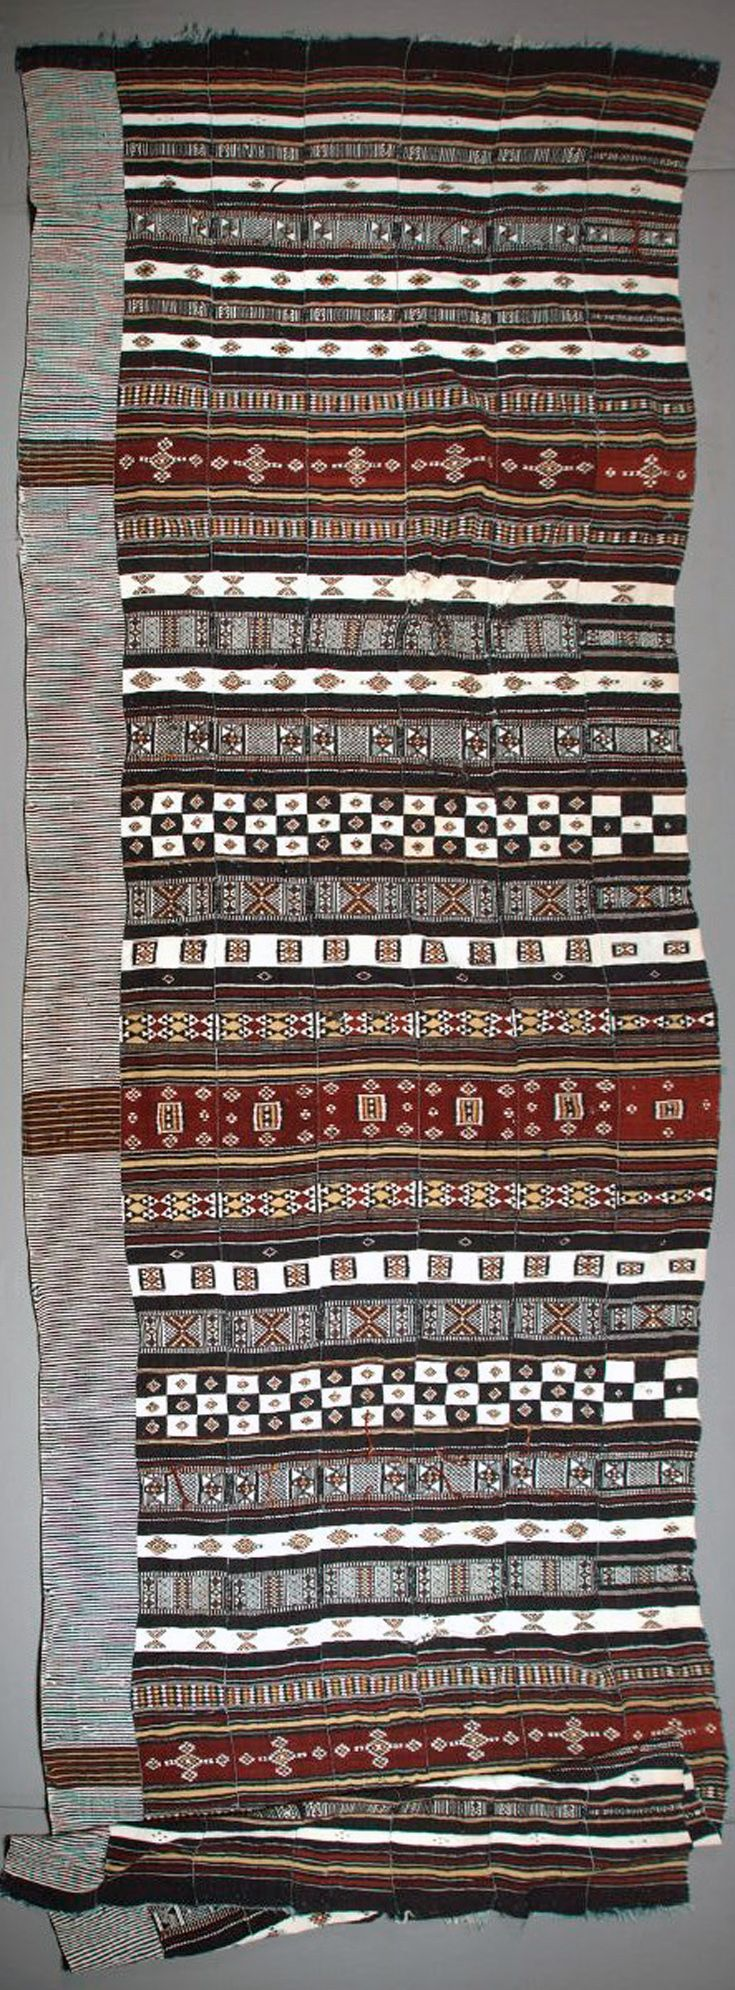 Africa | Wedding Hanging (arkilla) from the Fulani people of Mali | Early 20th century | Wool, cotton; weft-faced plain weave, tapestry weave, complementary weft patterning